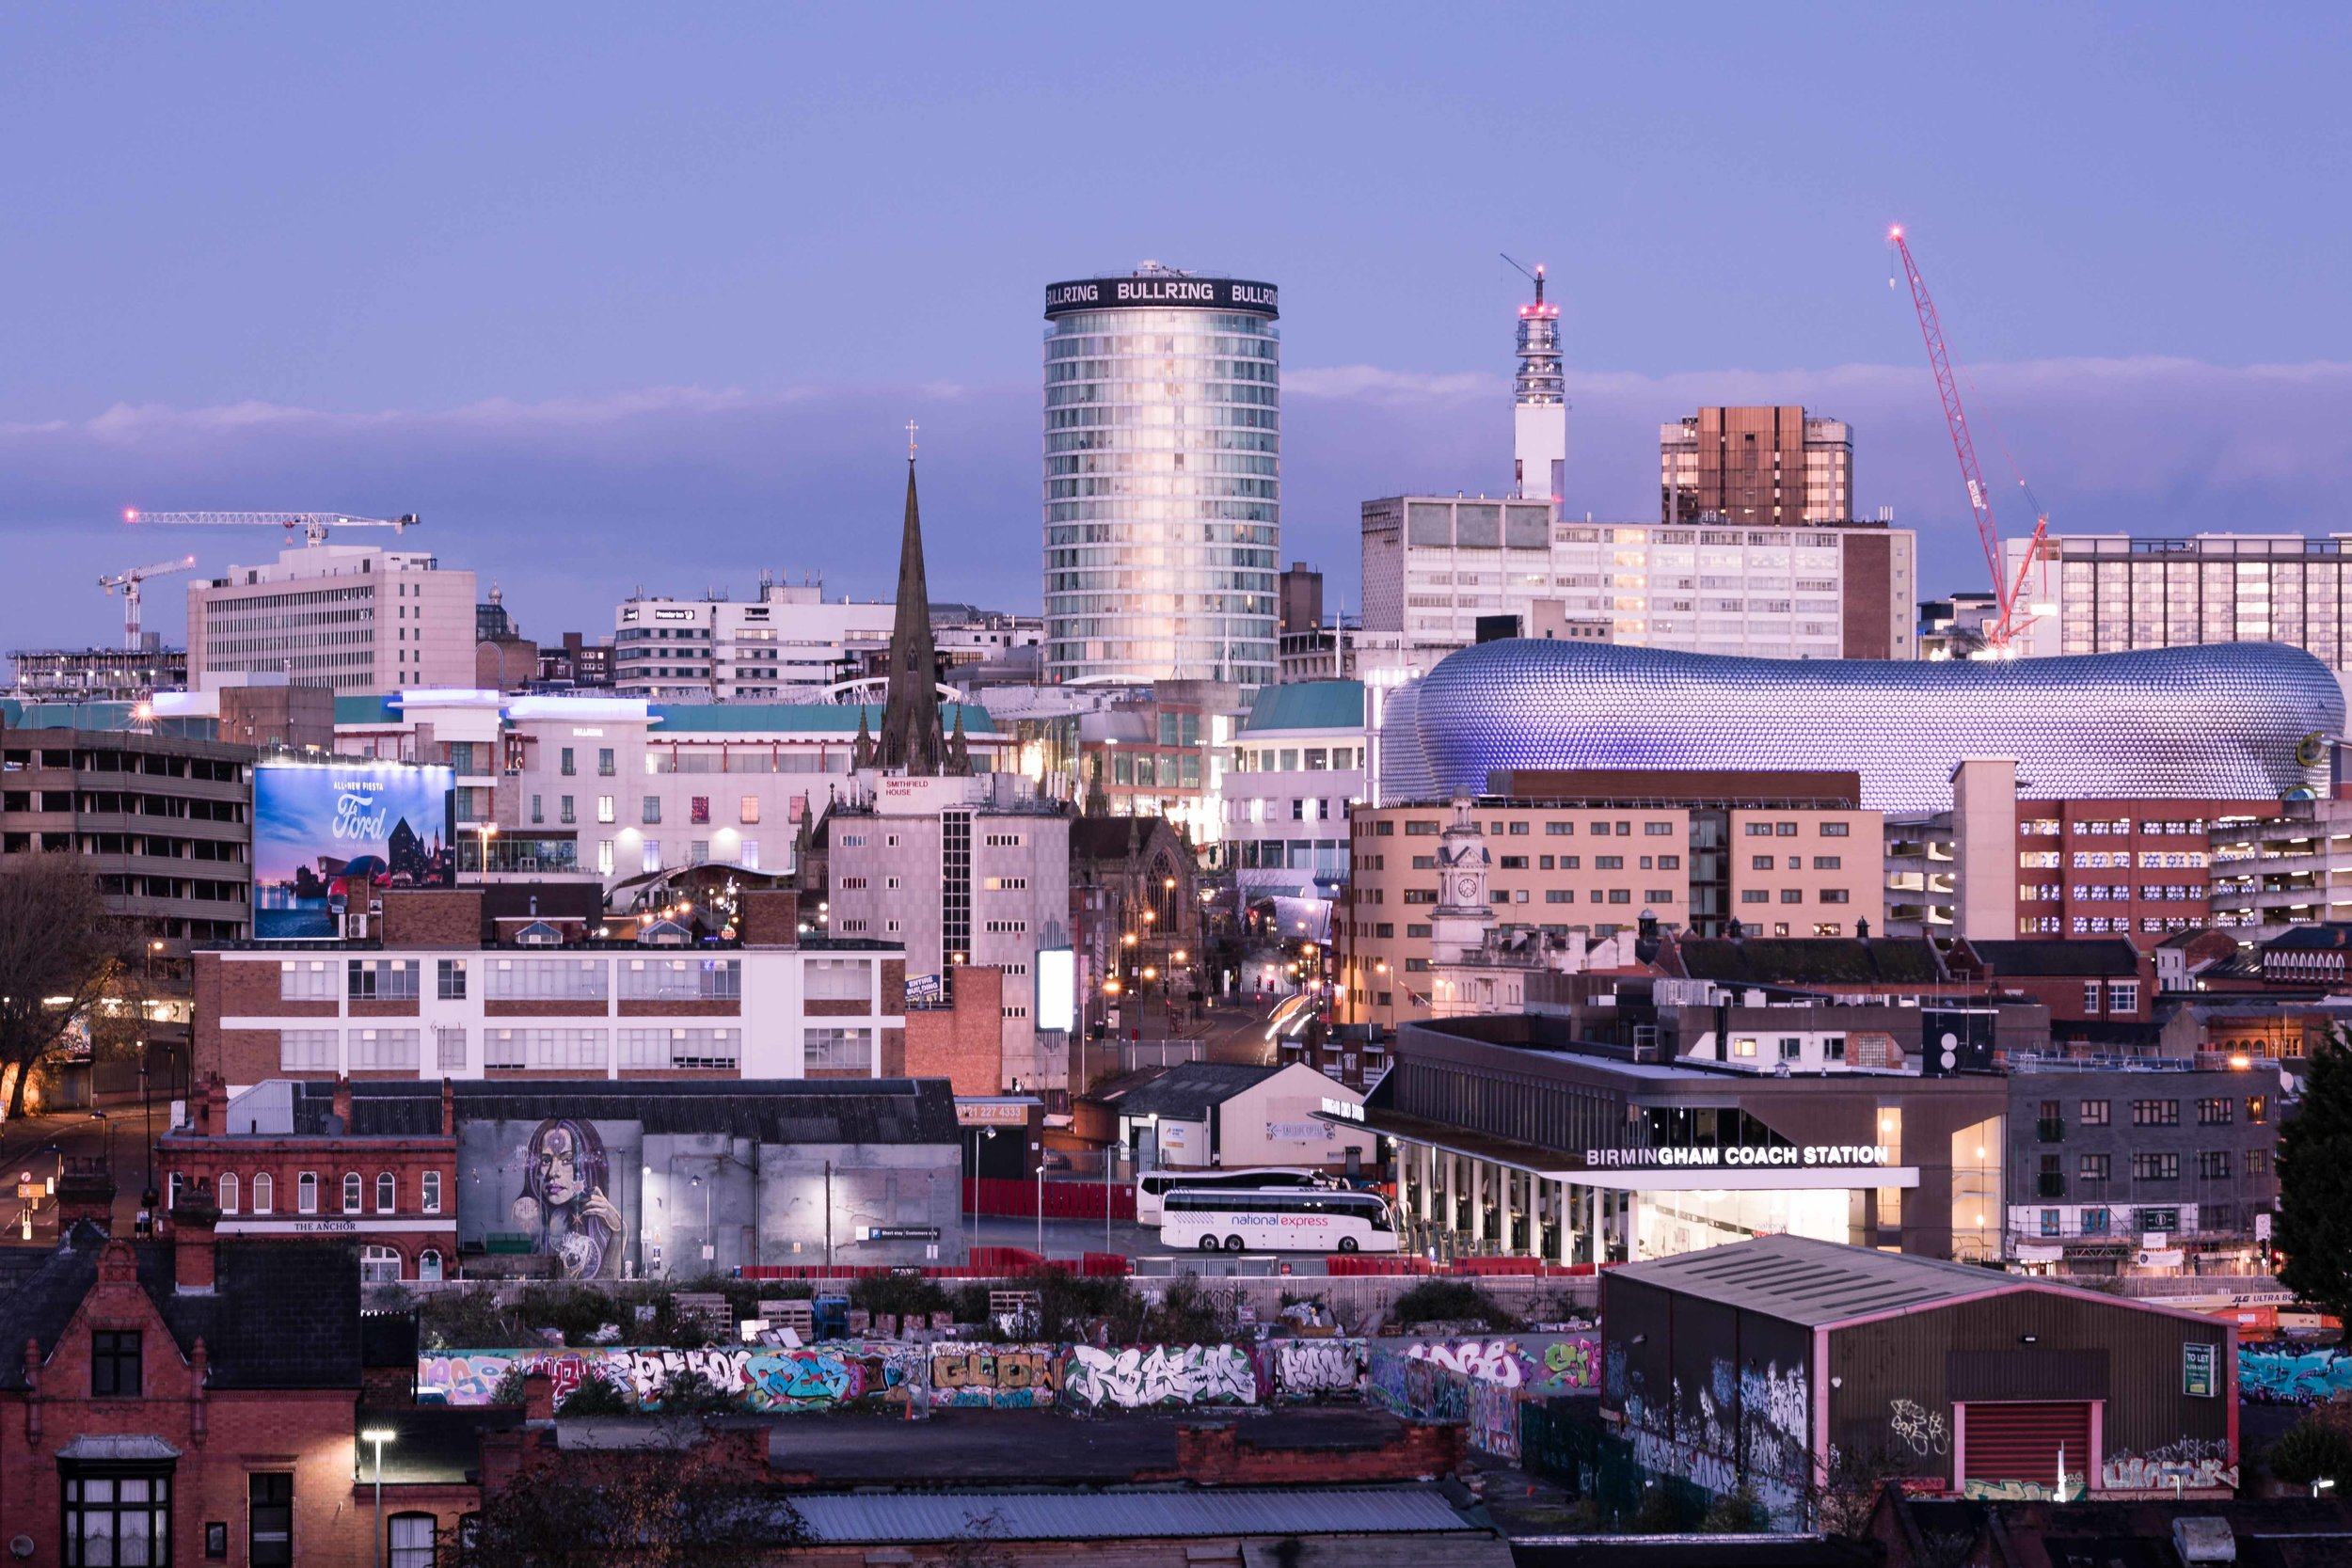 November: The Rotunda and the Bullring as seen from Deritend.